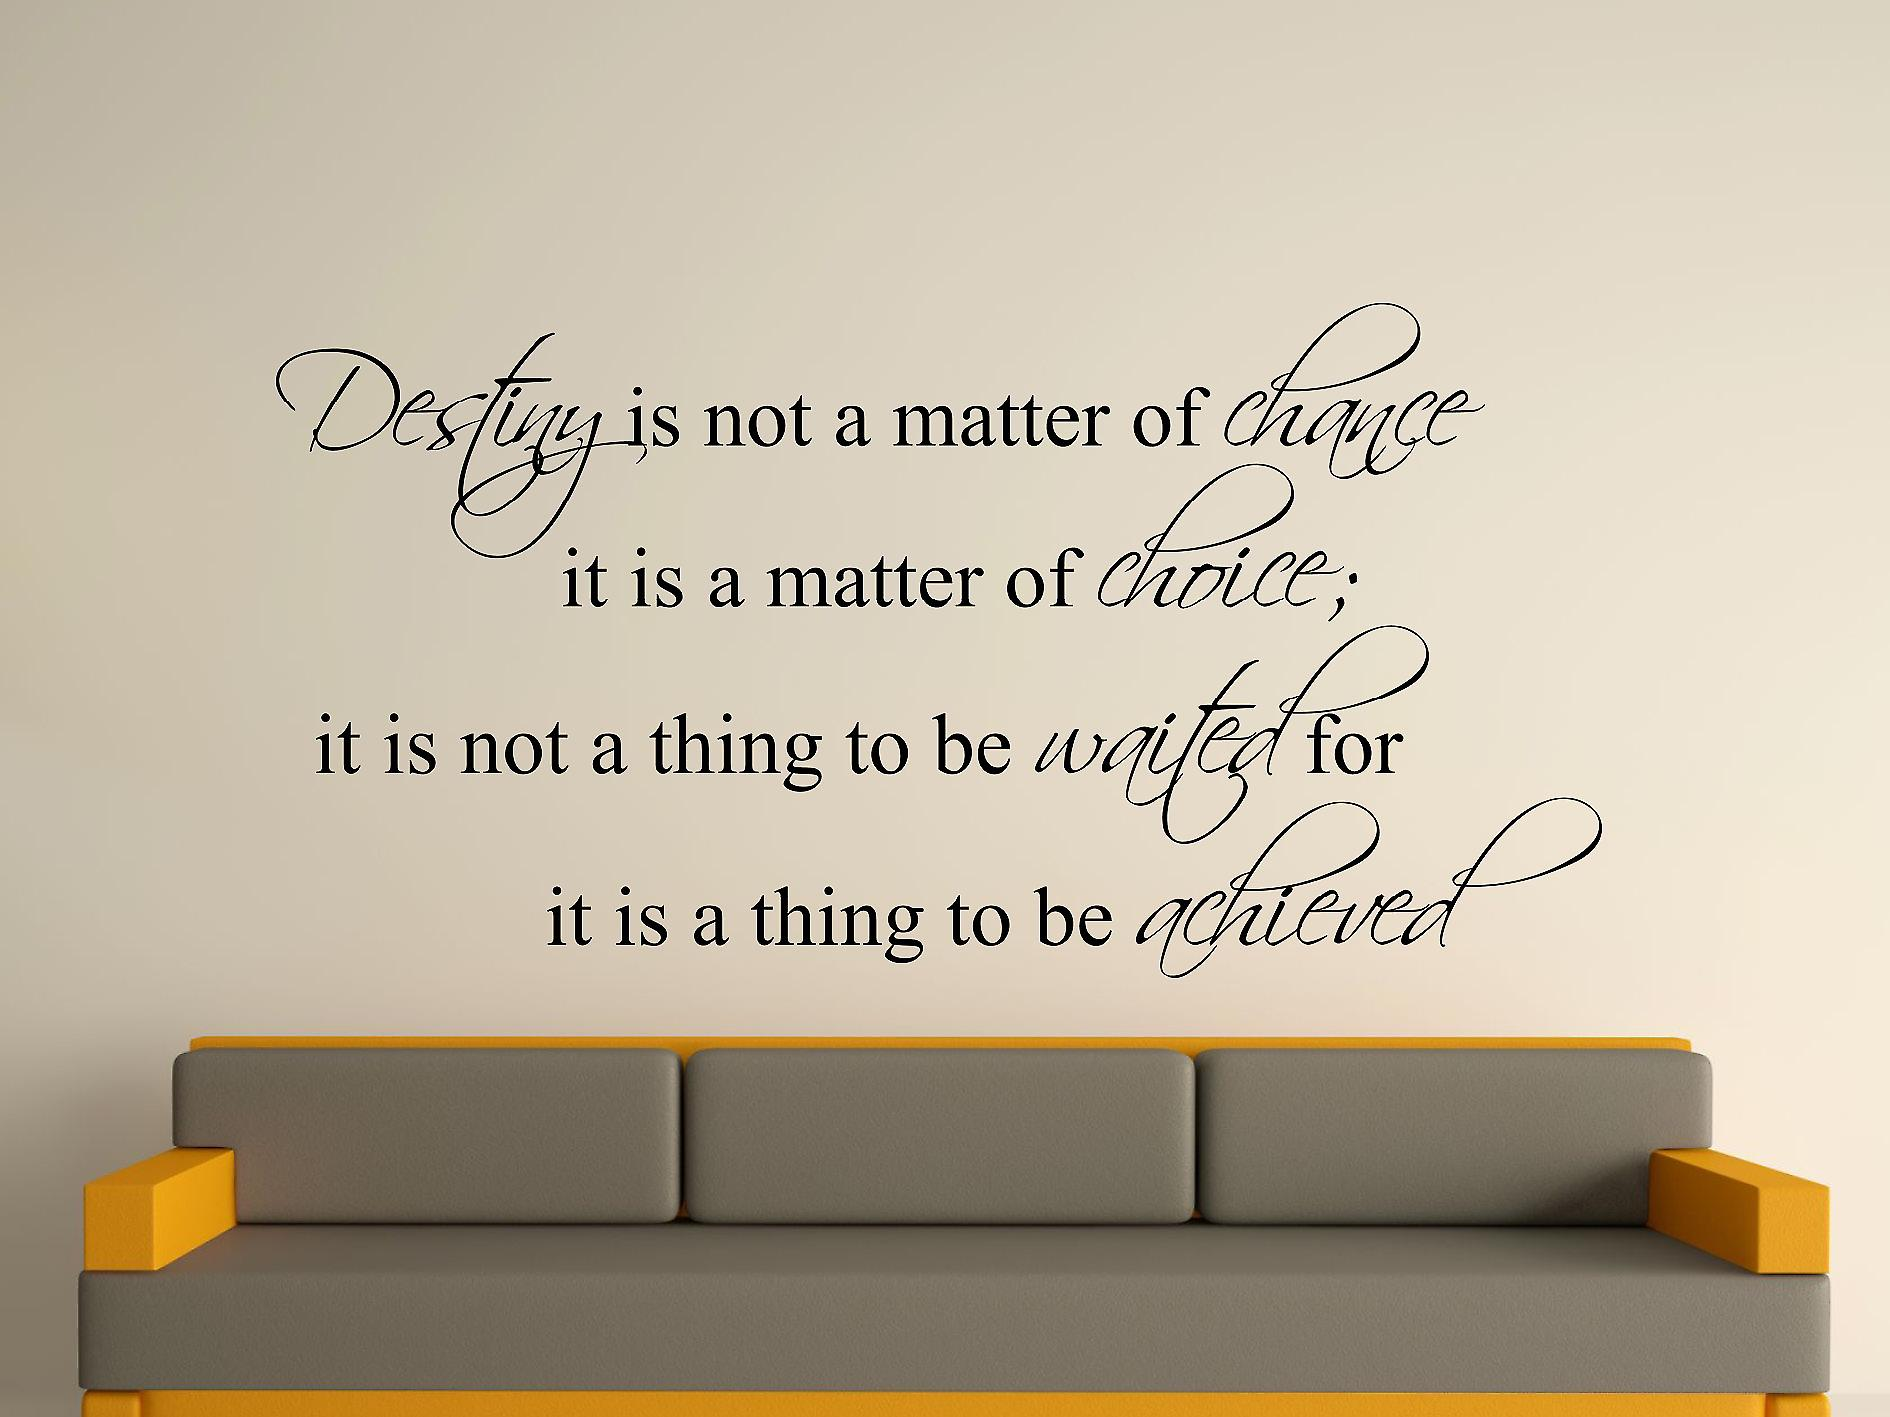 Destiny Is Not A Matter of Chance Wall Art Sticker - Black